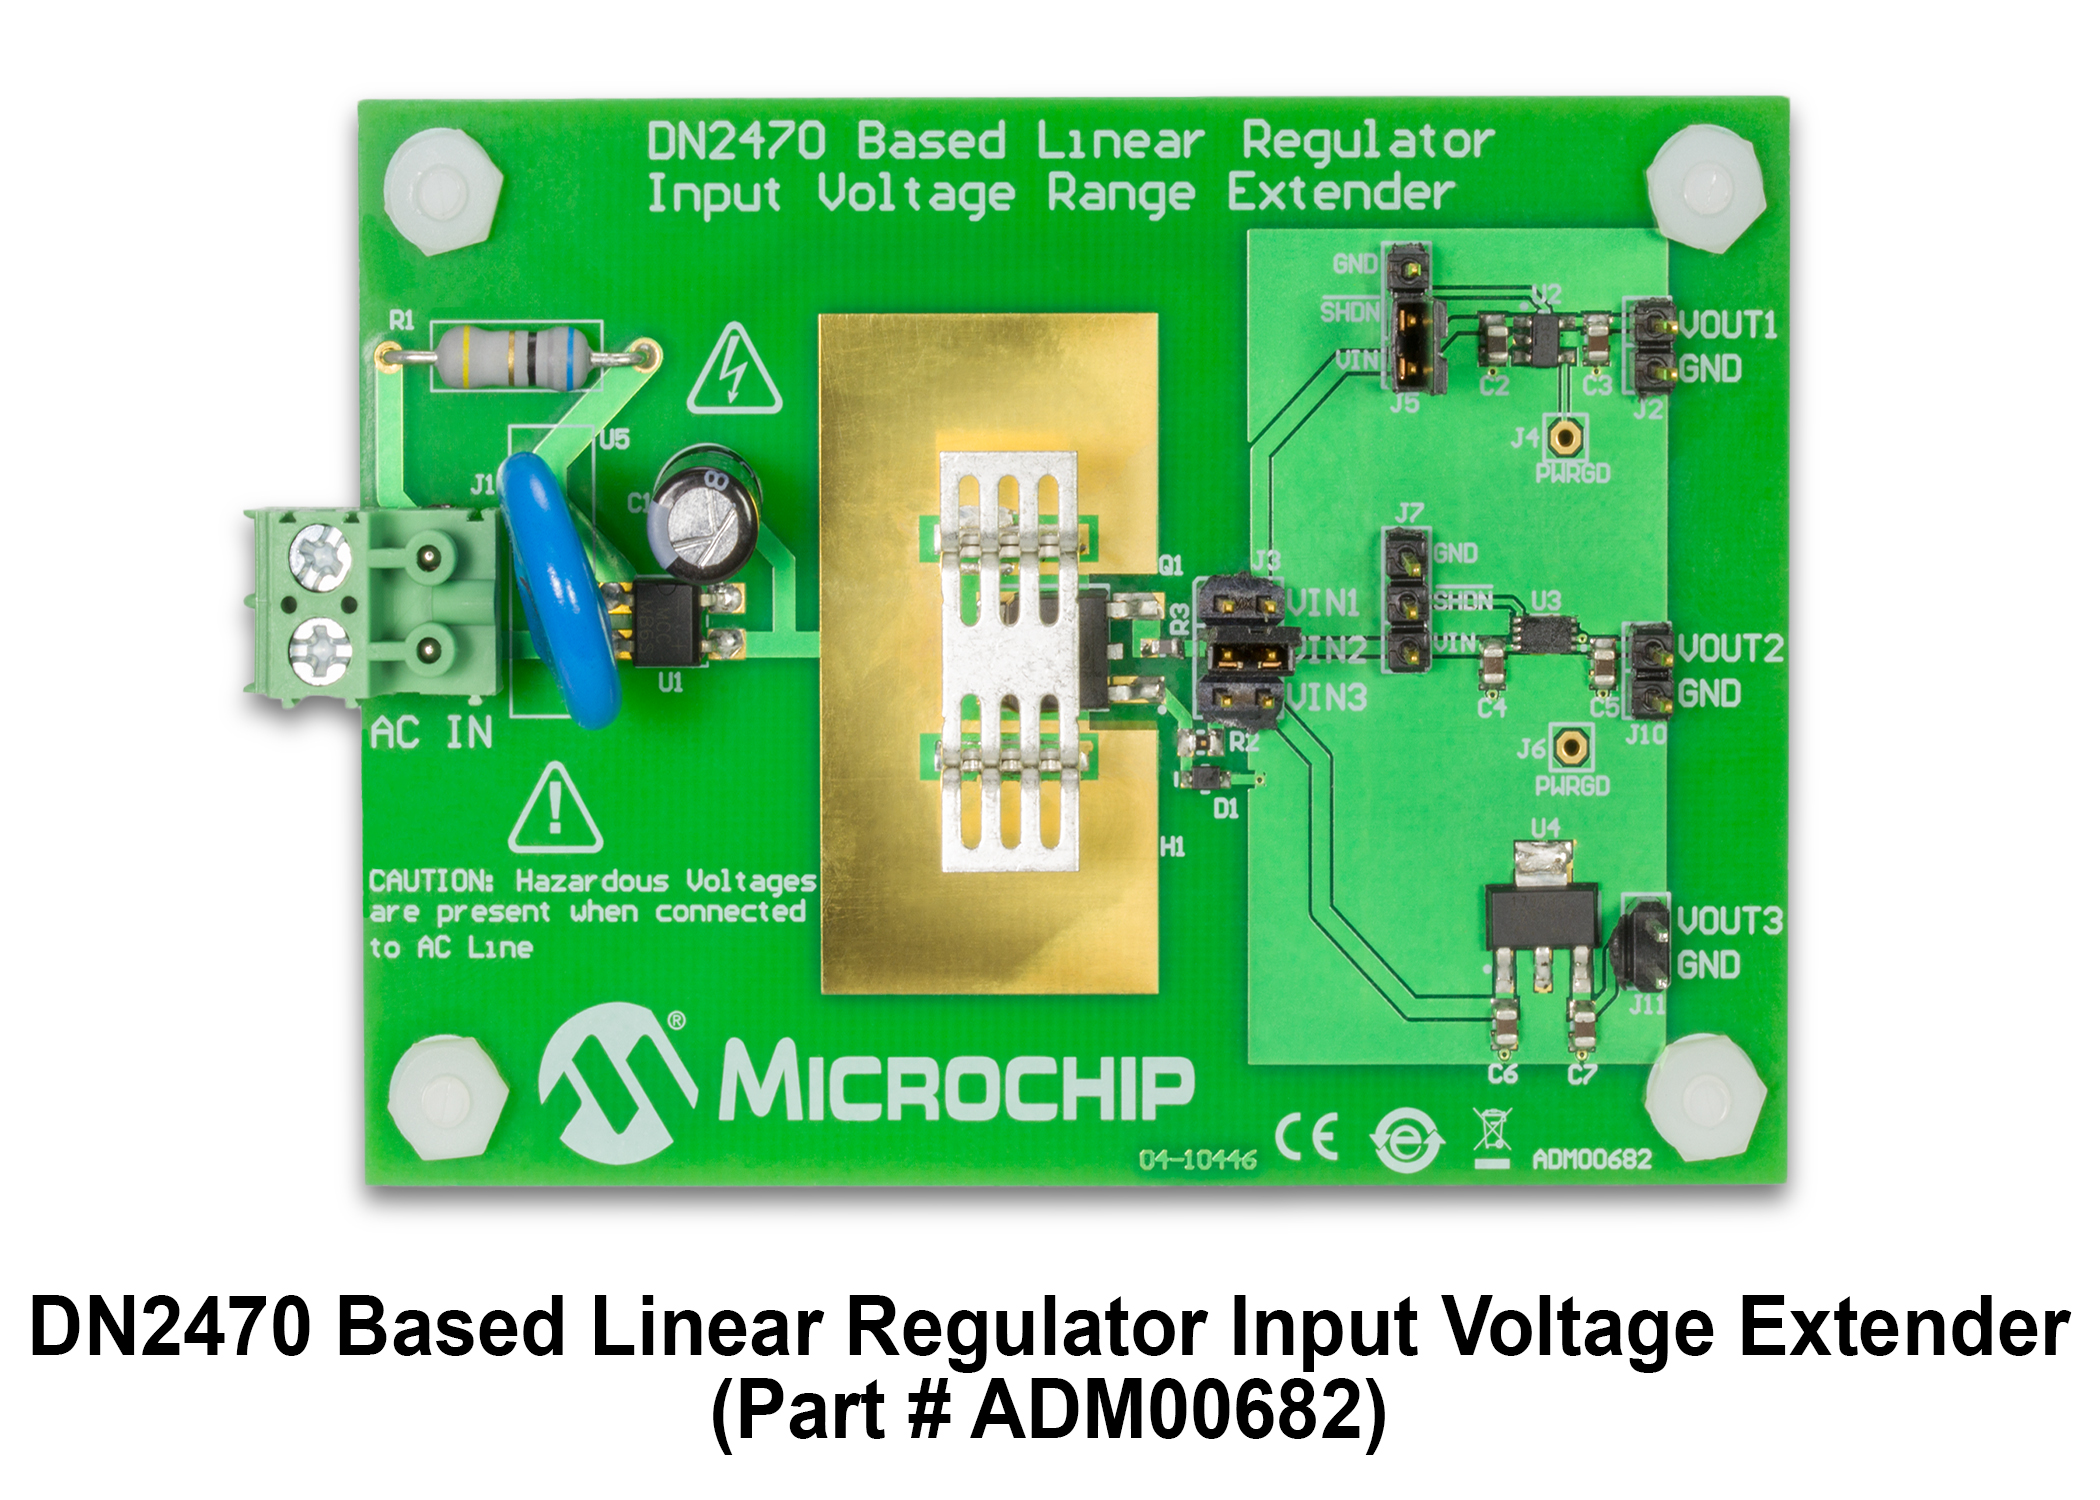 DN2470 Based Linear Regulator Input Voltage Range Extender Evaluation Board ADM00682